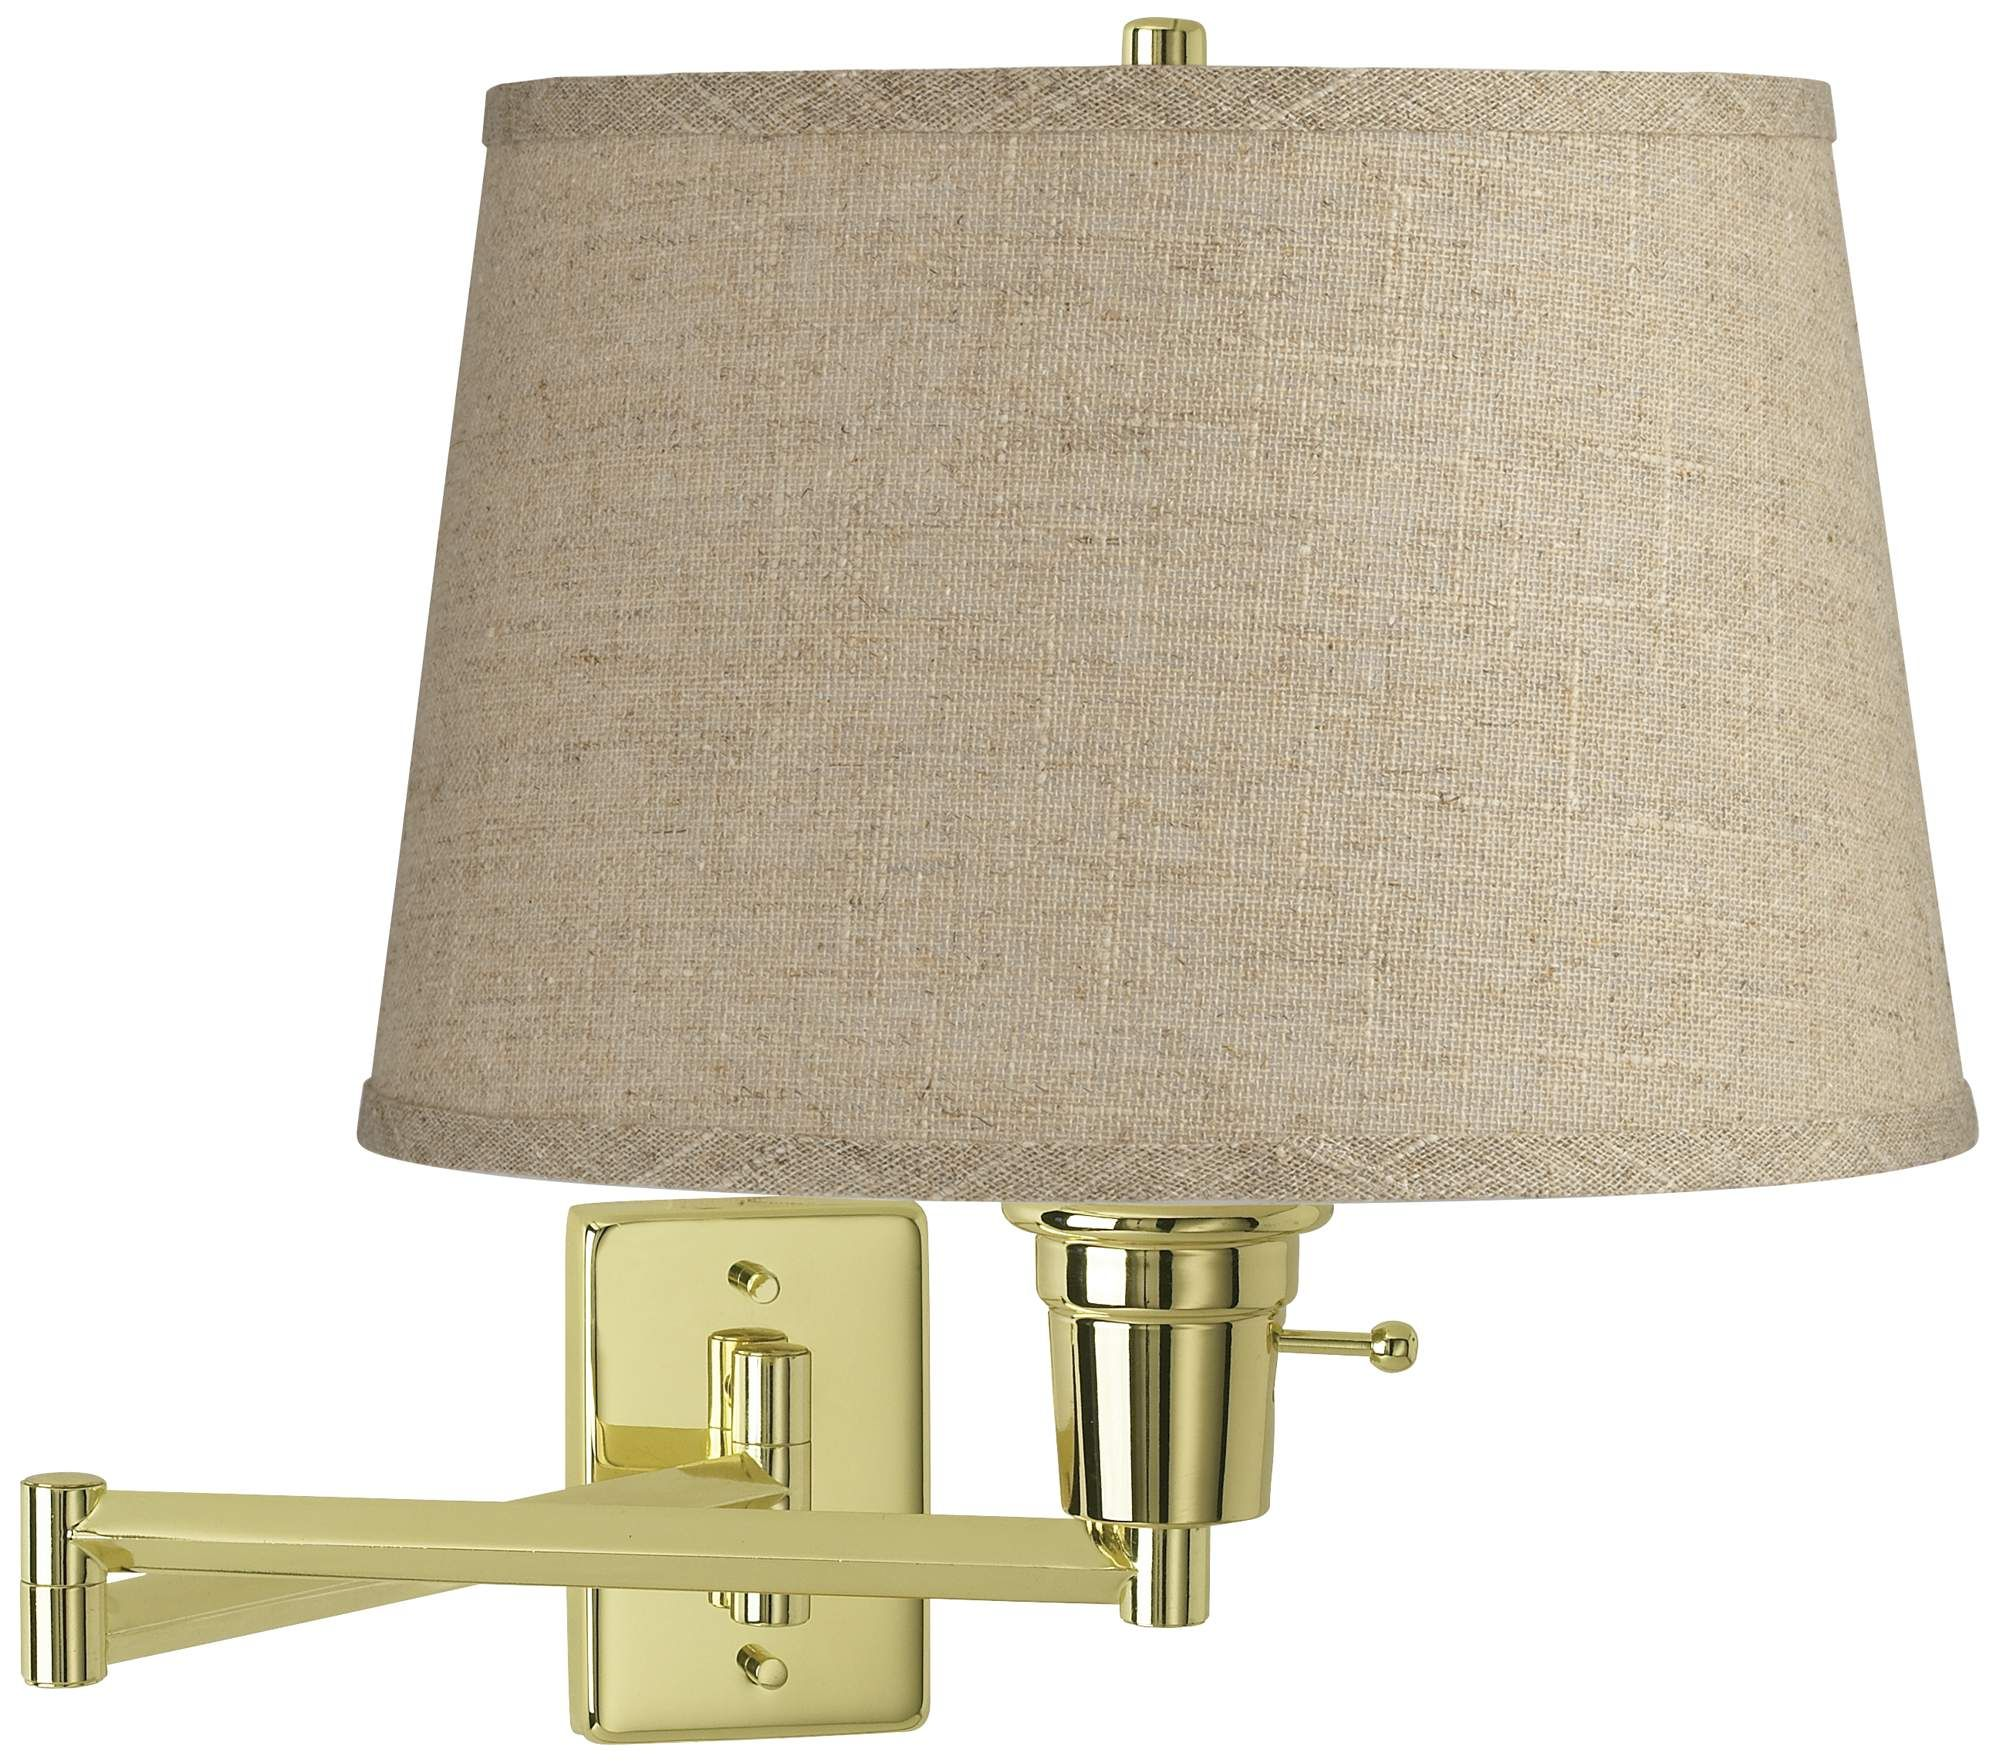 Wall Lamps Burlap Drum Shade Polished Brass Plug In Swing Arm Wall Lamp In 2020 Swing Arm Wall Lamps Wall Lamp Drum Shade